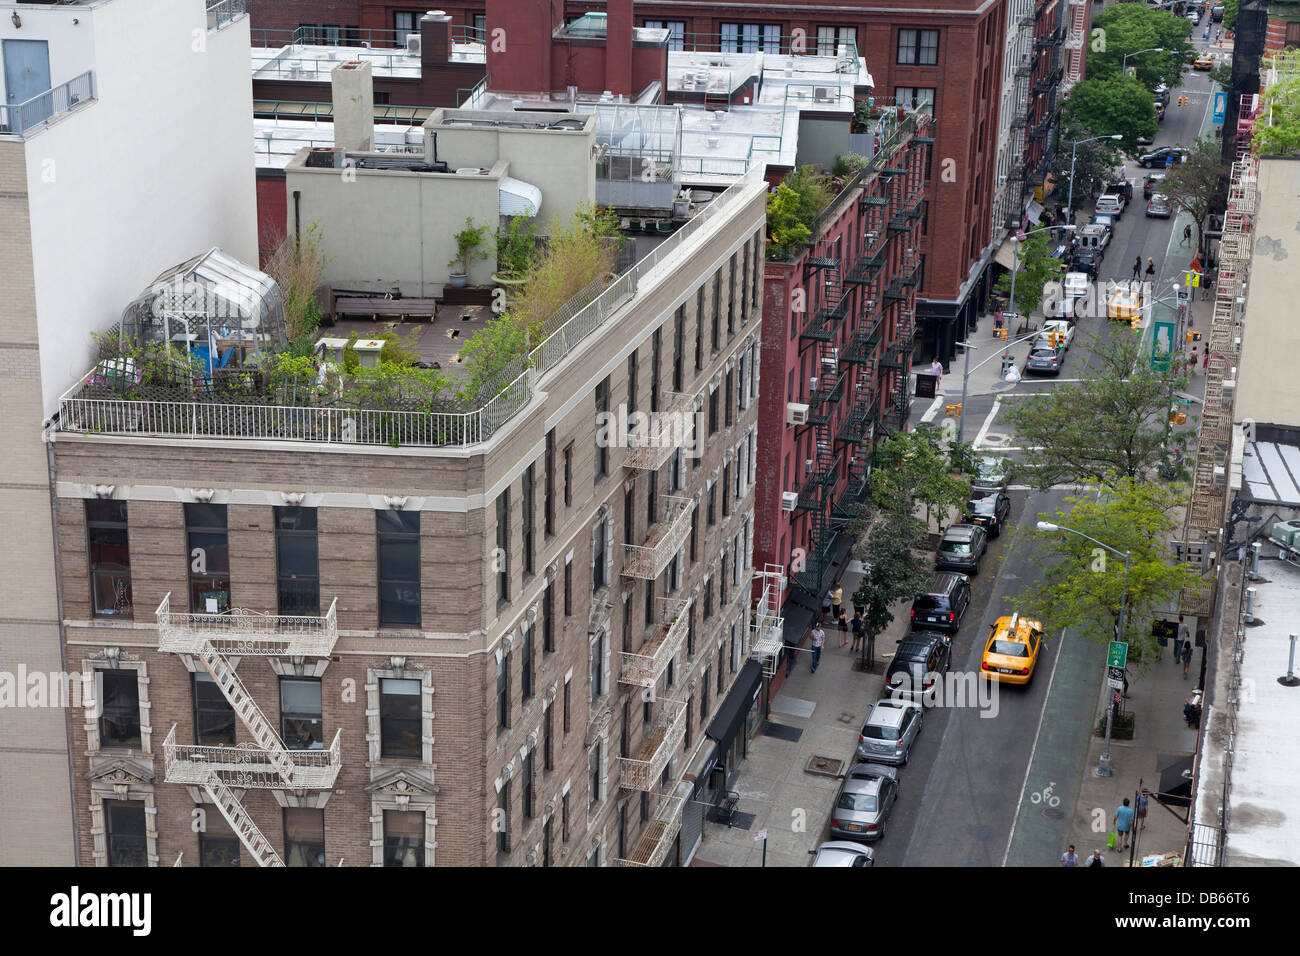 Garden and a greenhouse on the rooftop of an apartment building in New York City - Stock Image